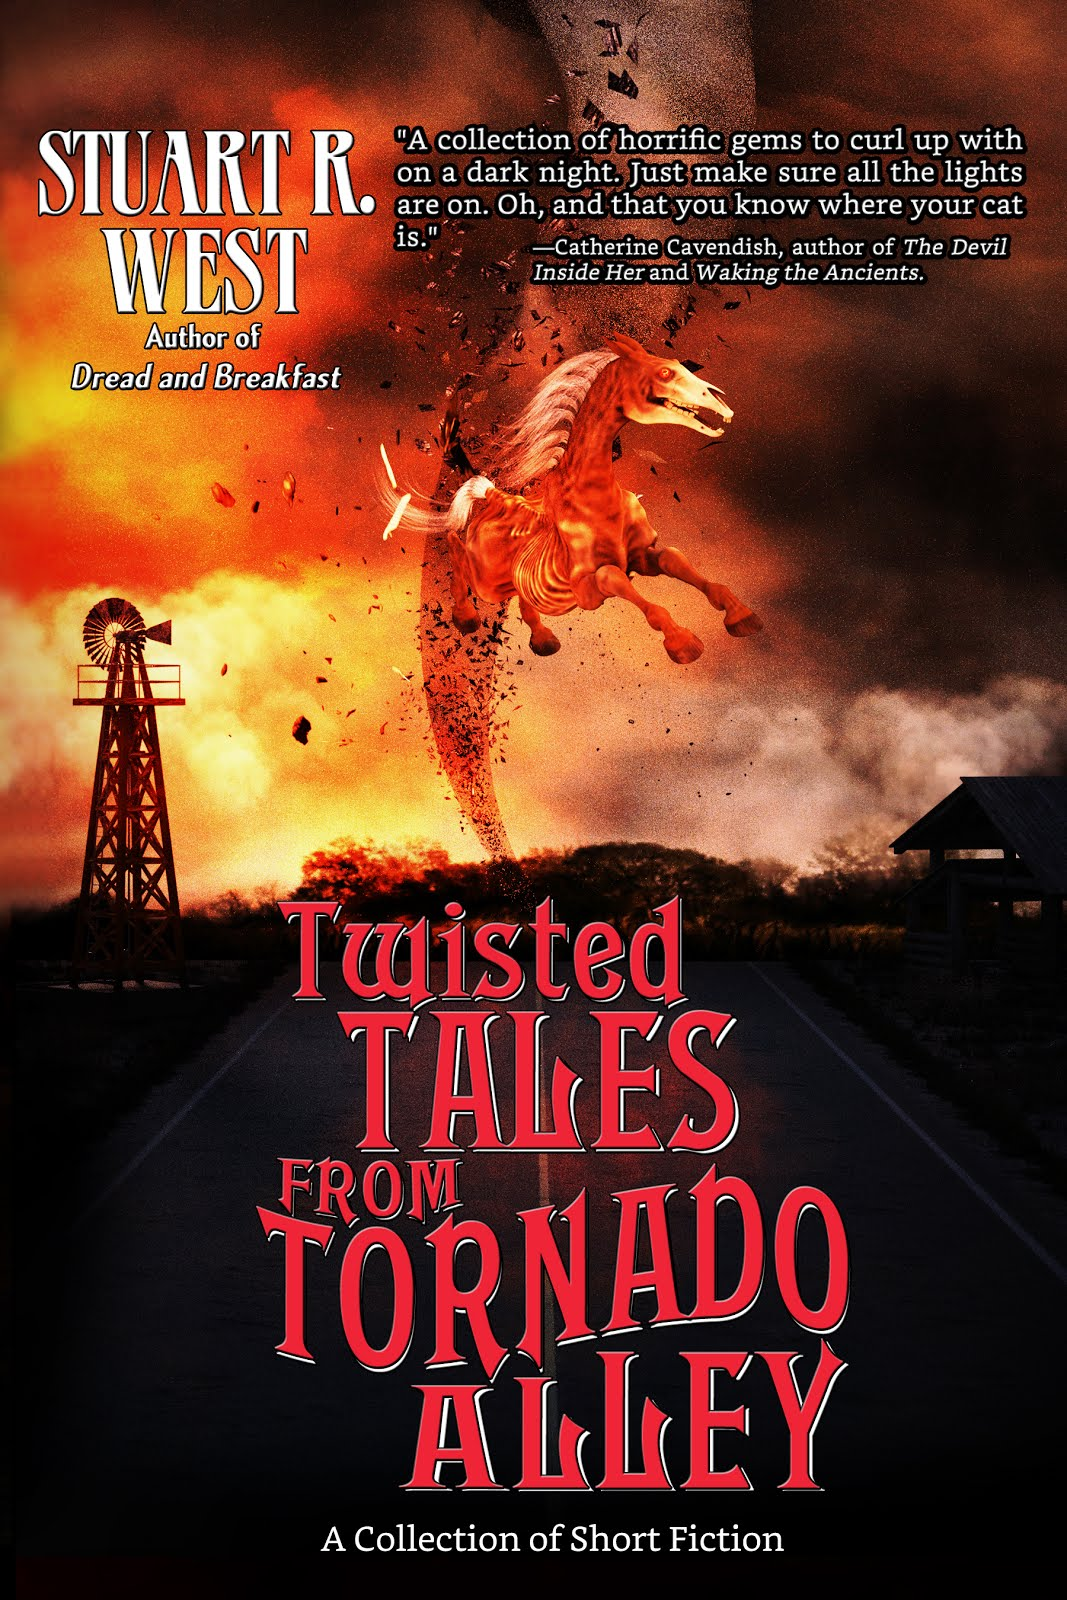 Twisted Tales from Tornado Alley